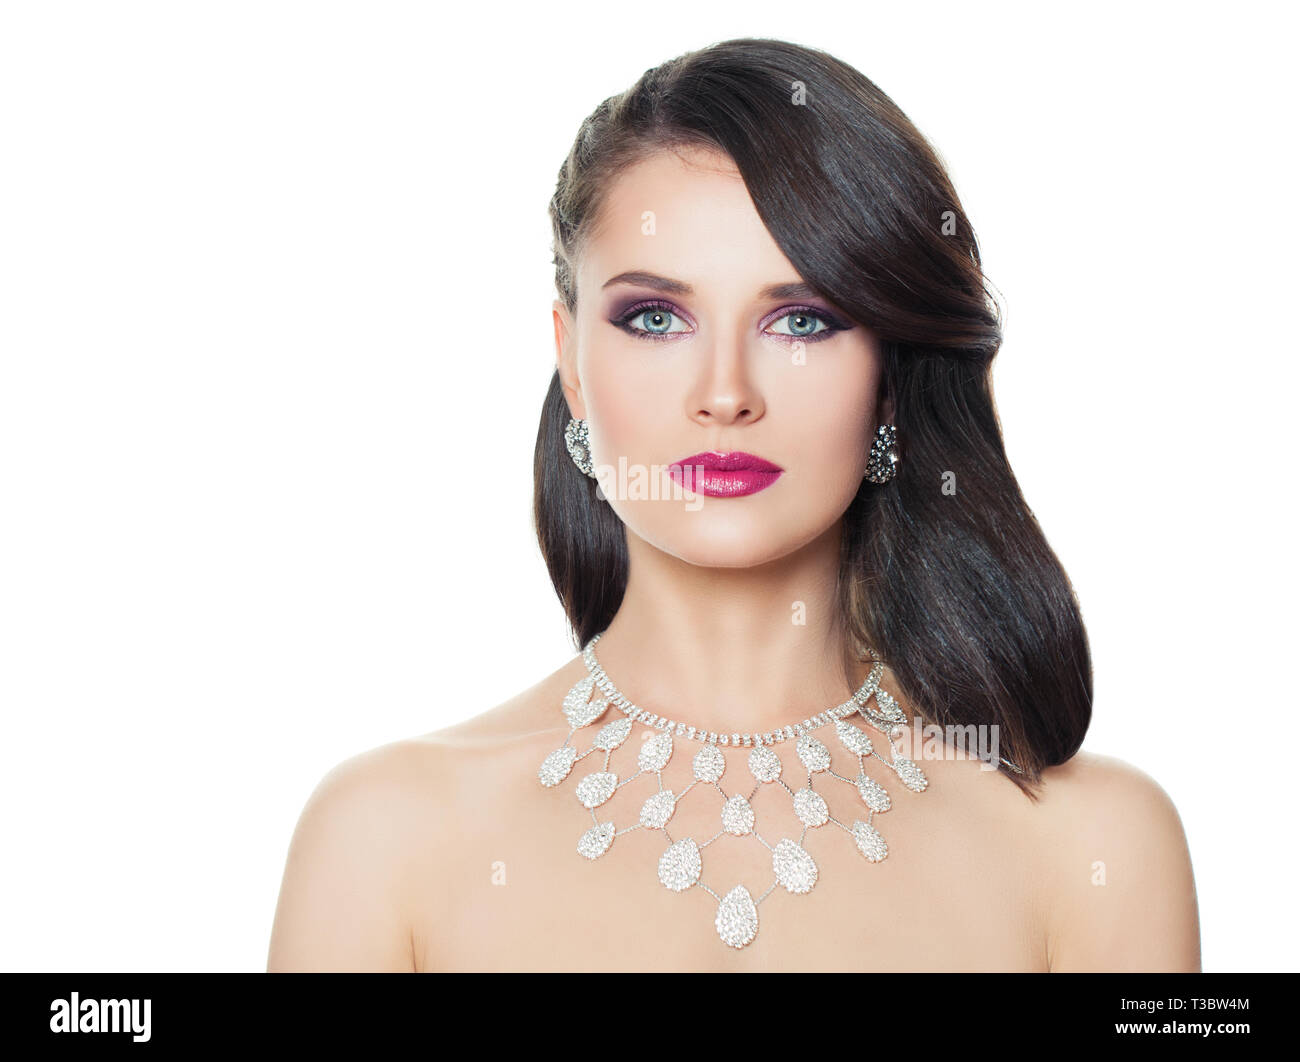 Diamond Jewellery Model High Resolution Stock Photography And Images Alamy